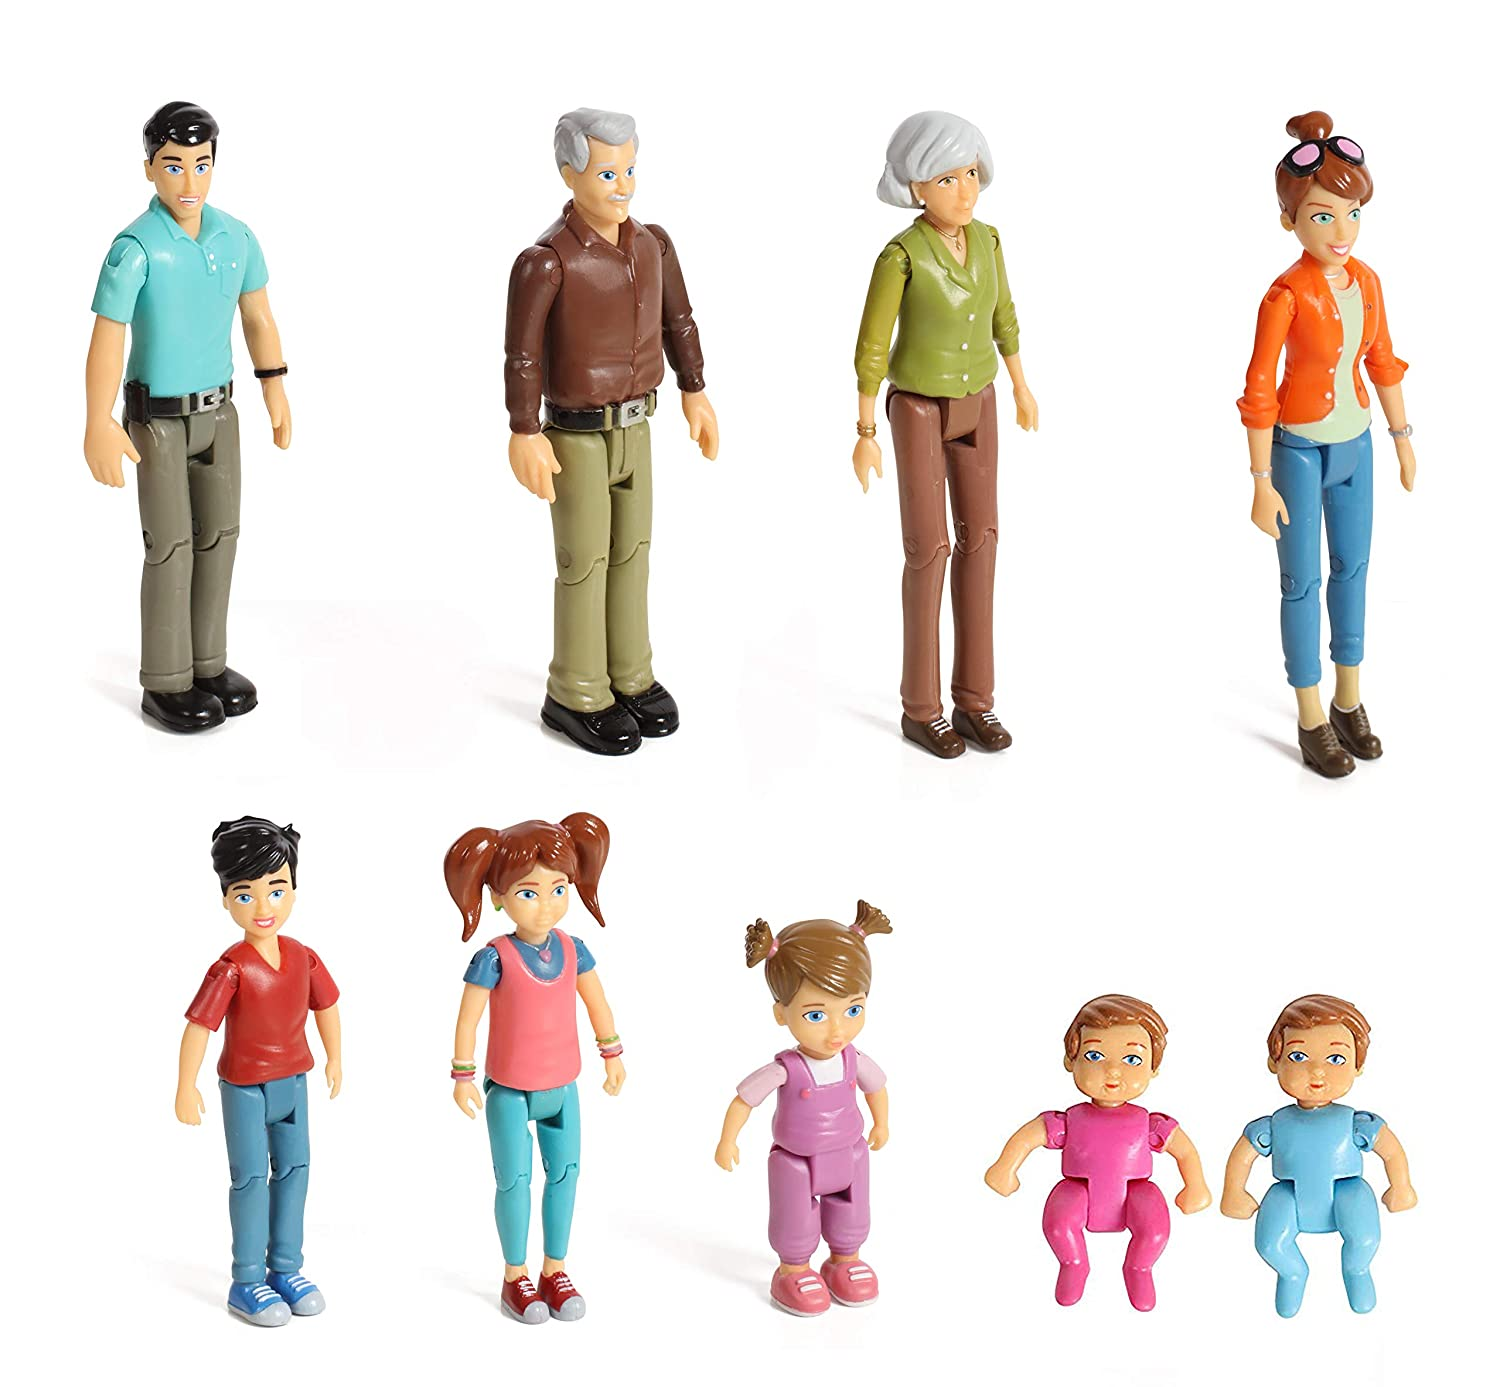 Dad Twin Boy /& Girl- Super Durable /& Updated 2019 Edition Grandma Toddler Sister Mom Brother Beverly Hills Doll Collection TM Sweet Lil Family Set 9 Action Figures- Grandpa